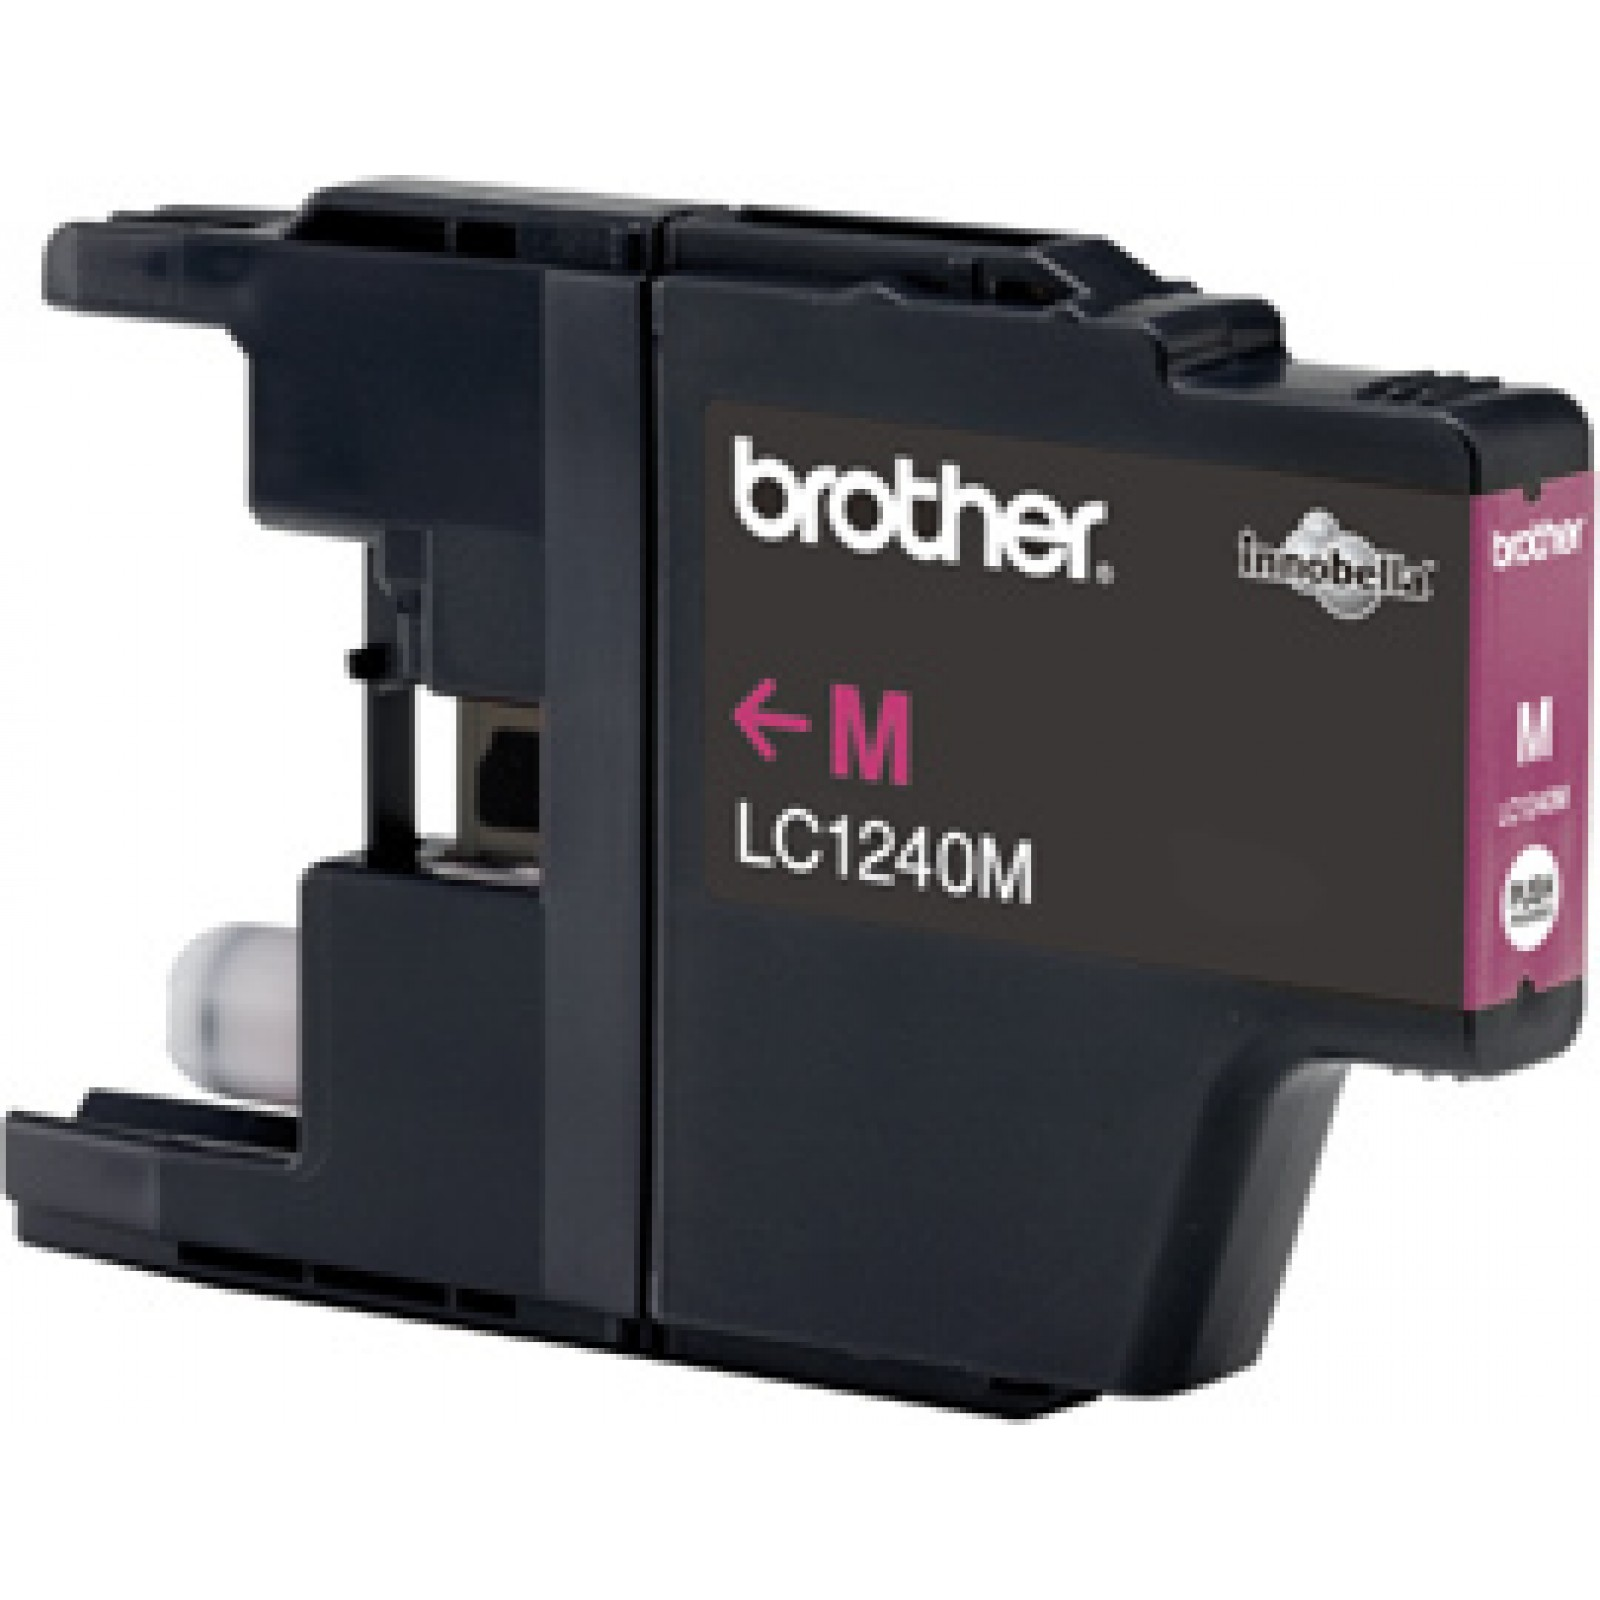 Brother LC-1240M Druckerpatrone magenta